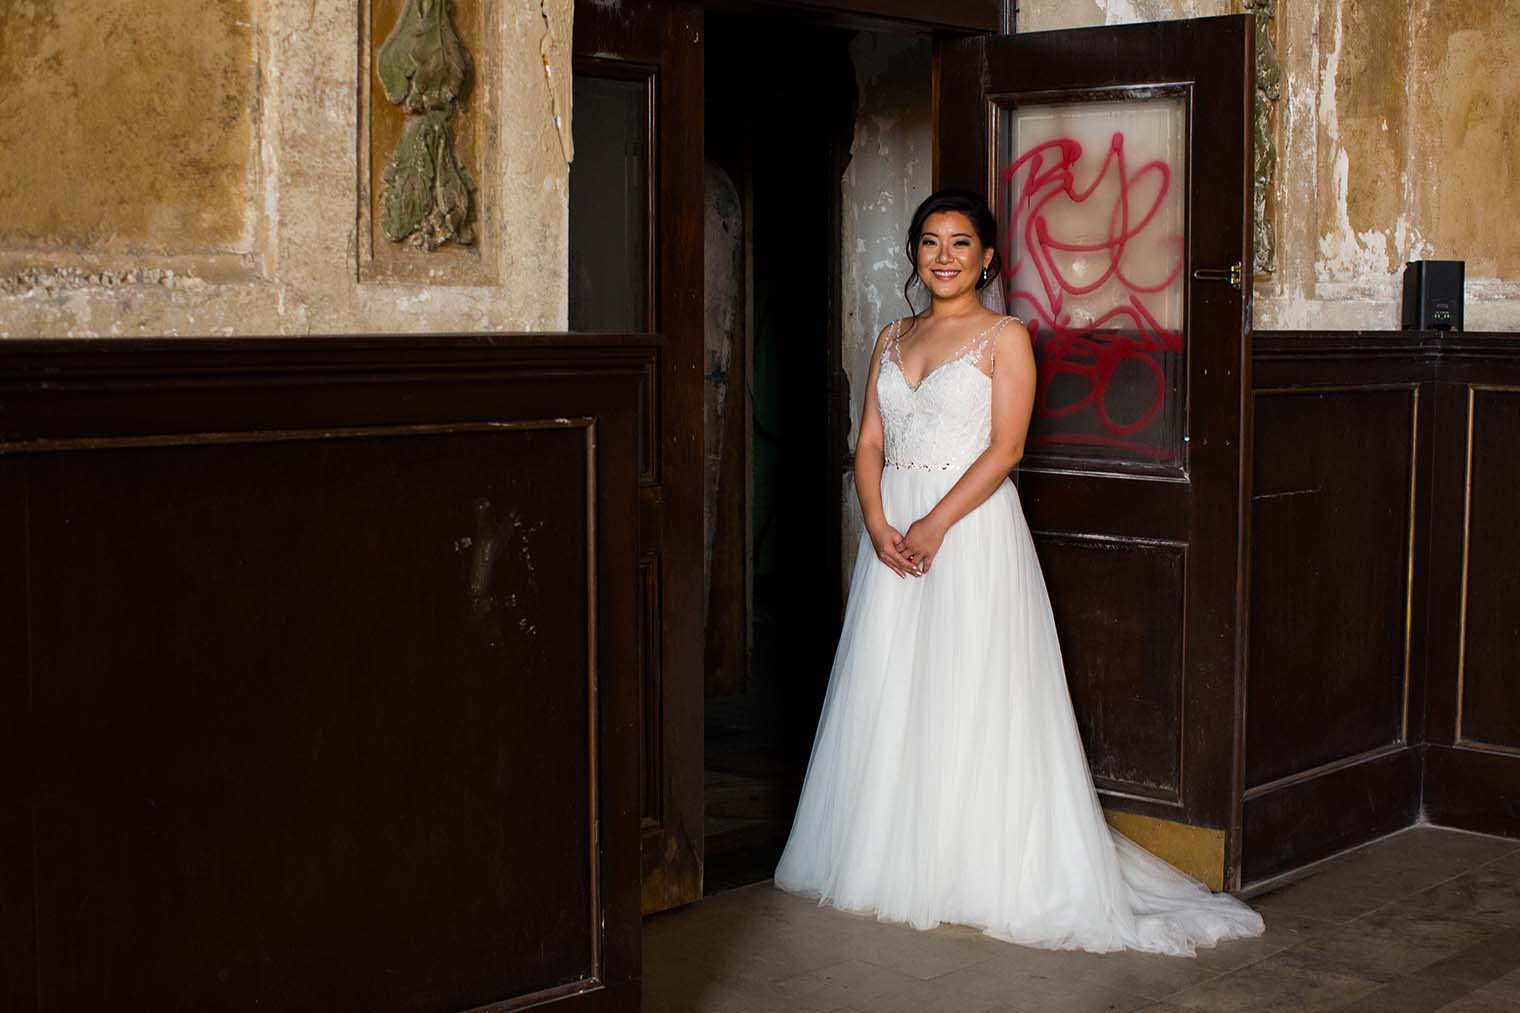 16th Street Station Wedding Bride Portrait